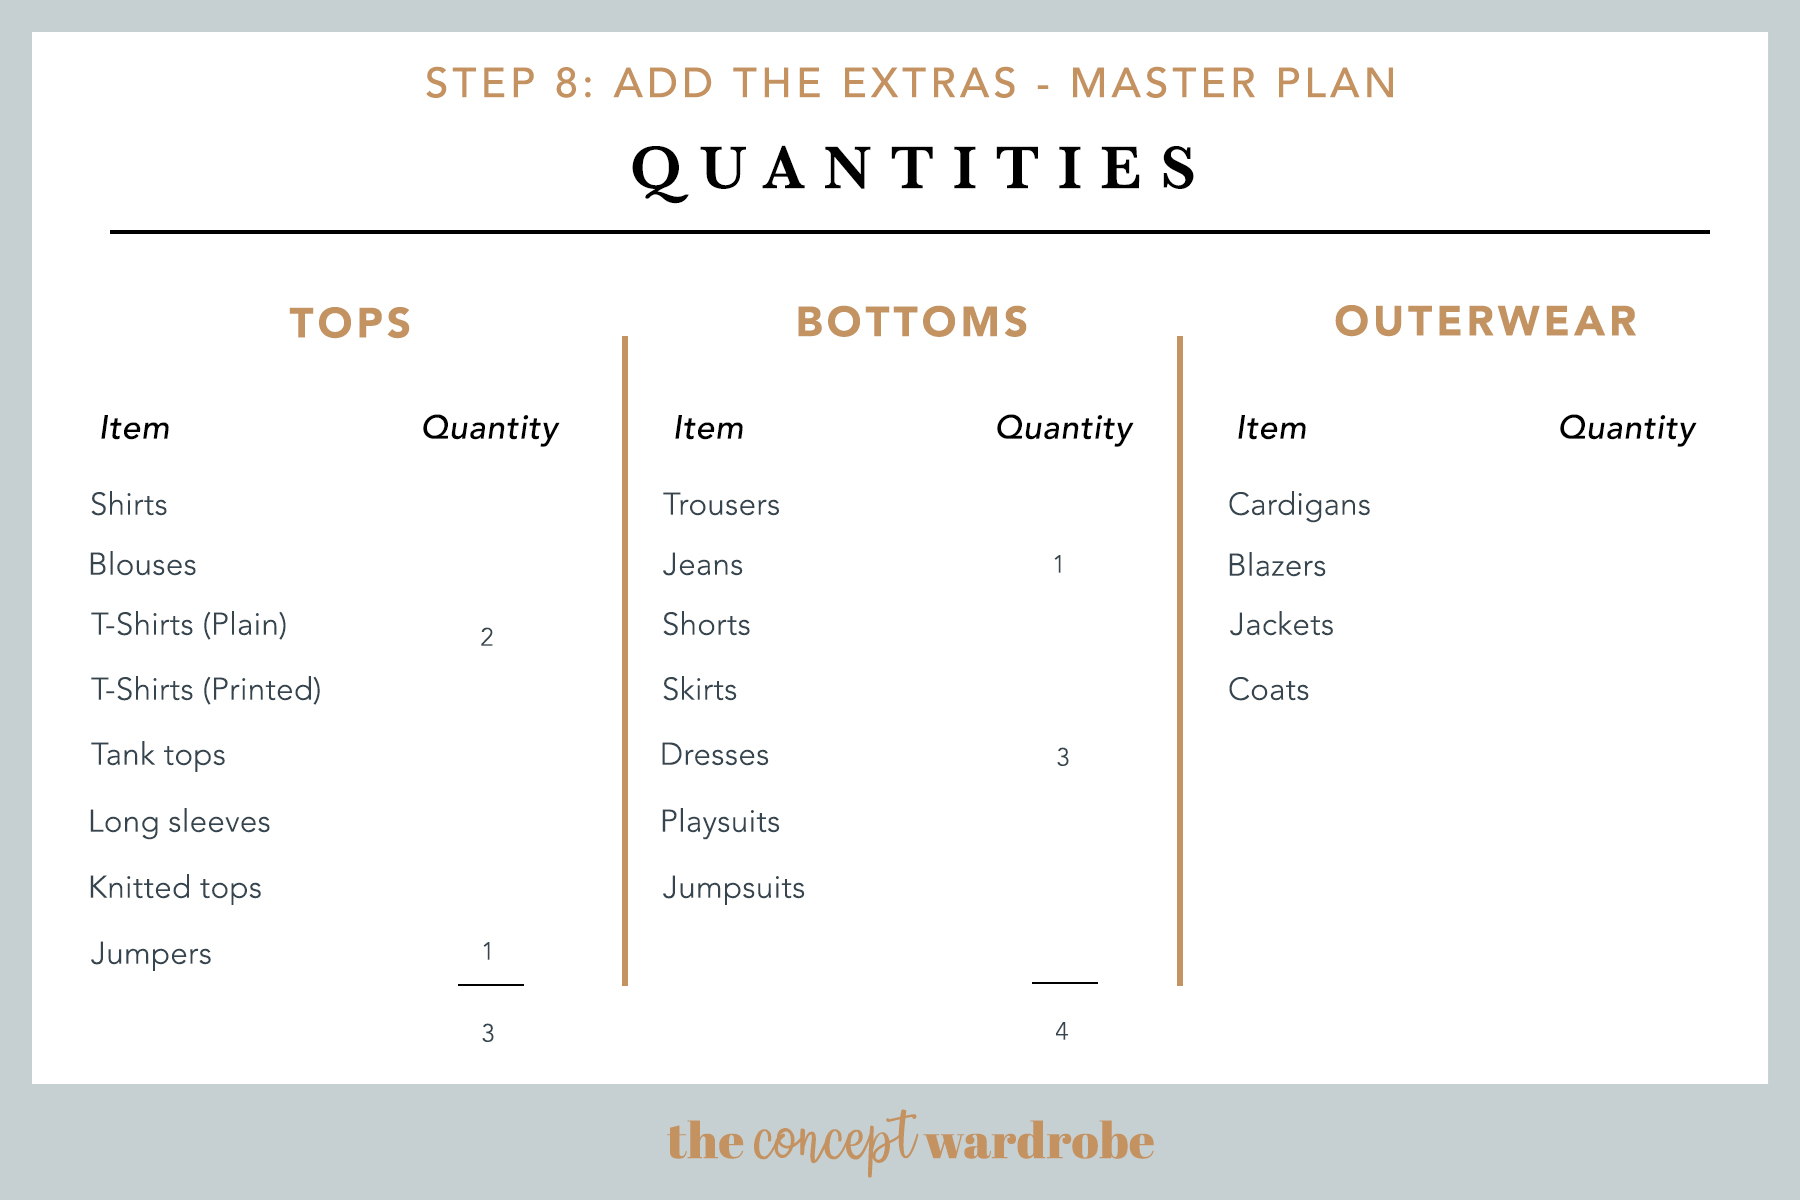 Add the Extras Master Plan Example - the concept wardrobe